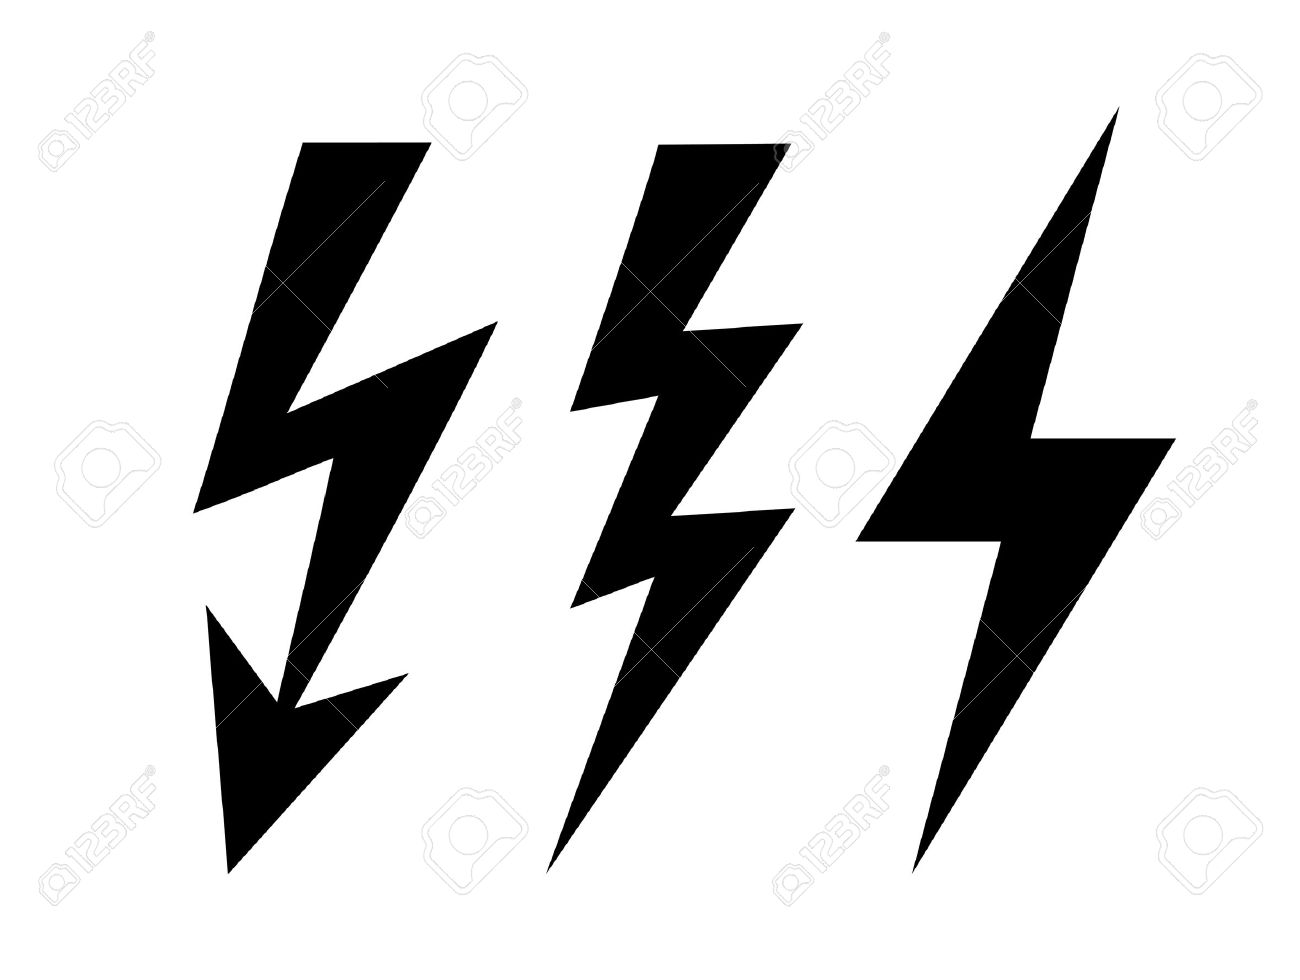 bolt icon royalty free cliparts vectors and stock illustration rh 123rf com stockton lightning vector vector lightning free